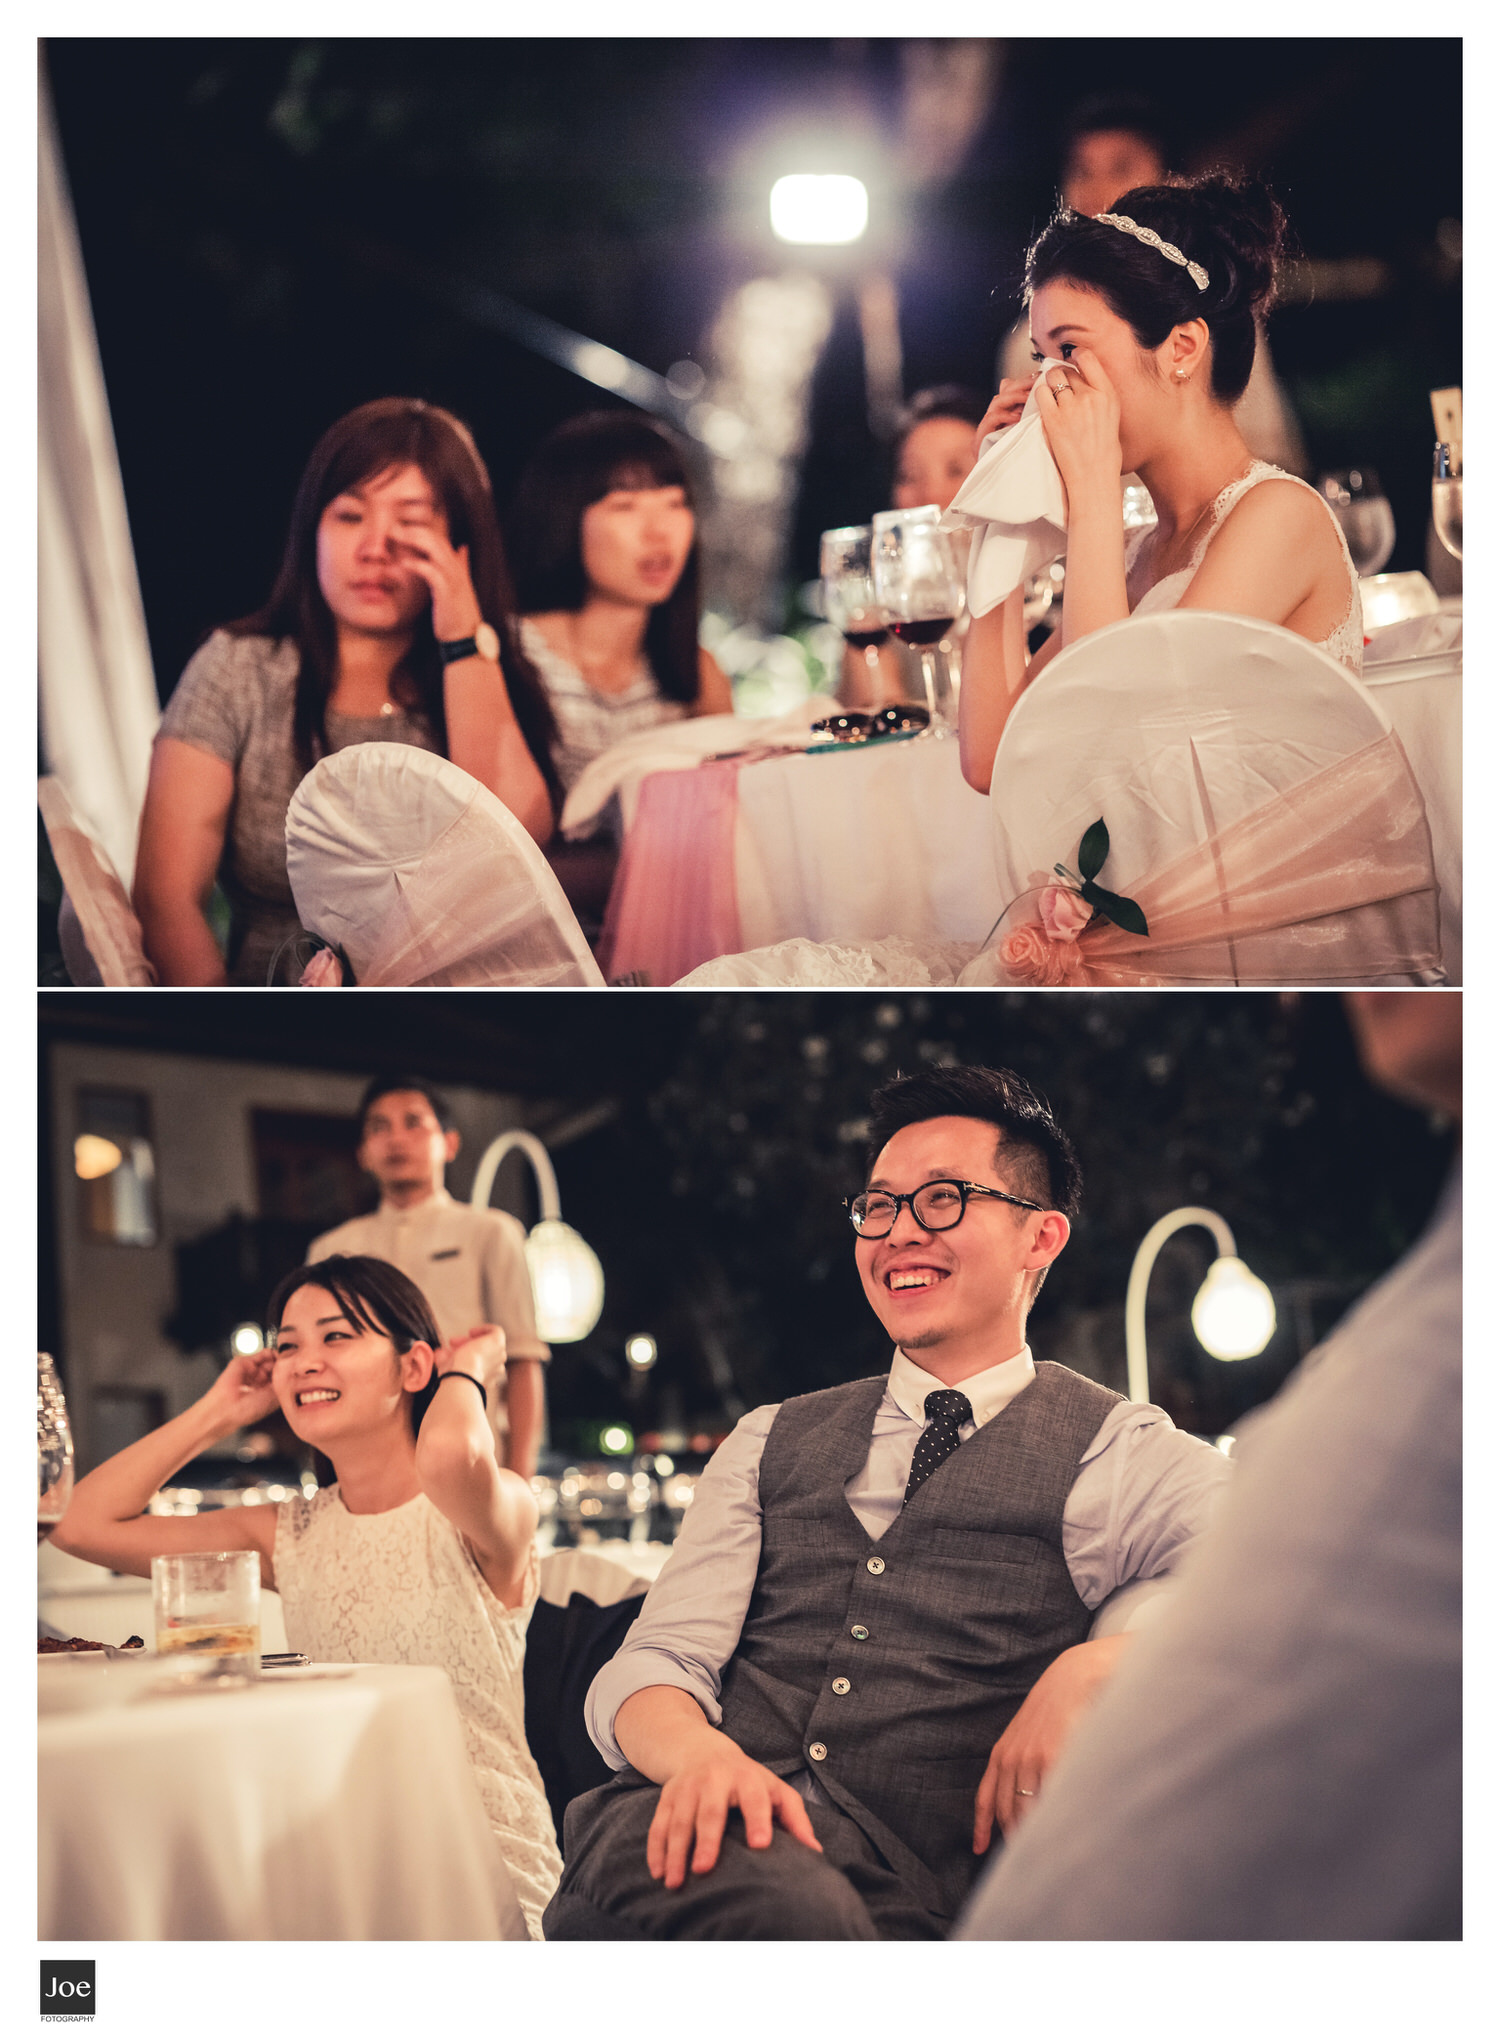 joe-fotography-bali-wedding-ayana-resort-janie-sean-69.jpg